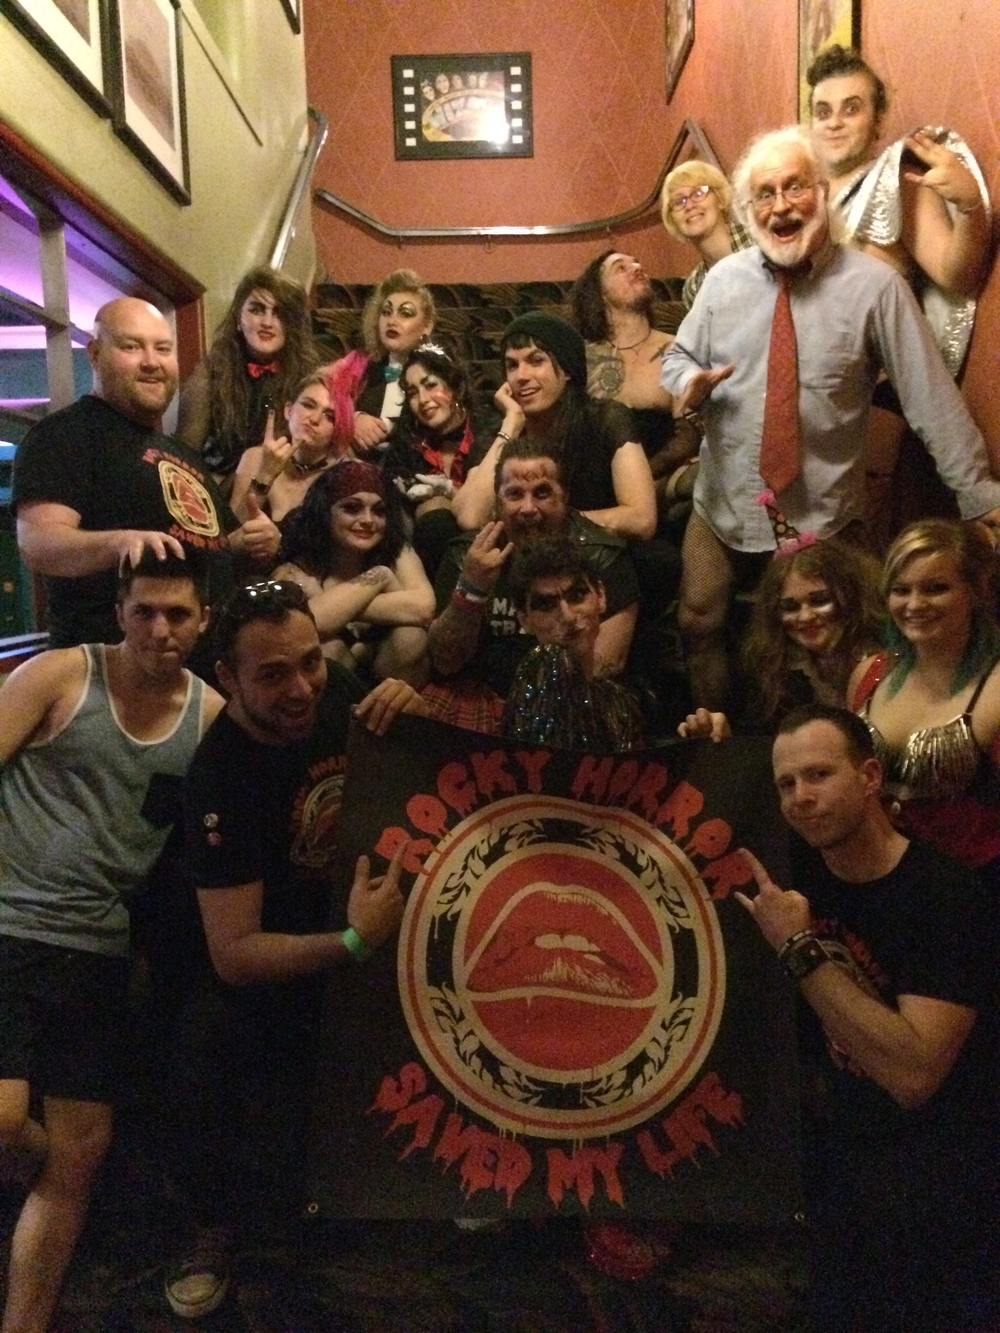 Group photo with  The Royal Mystic Order of Chaos  cast in Houston, Texa